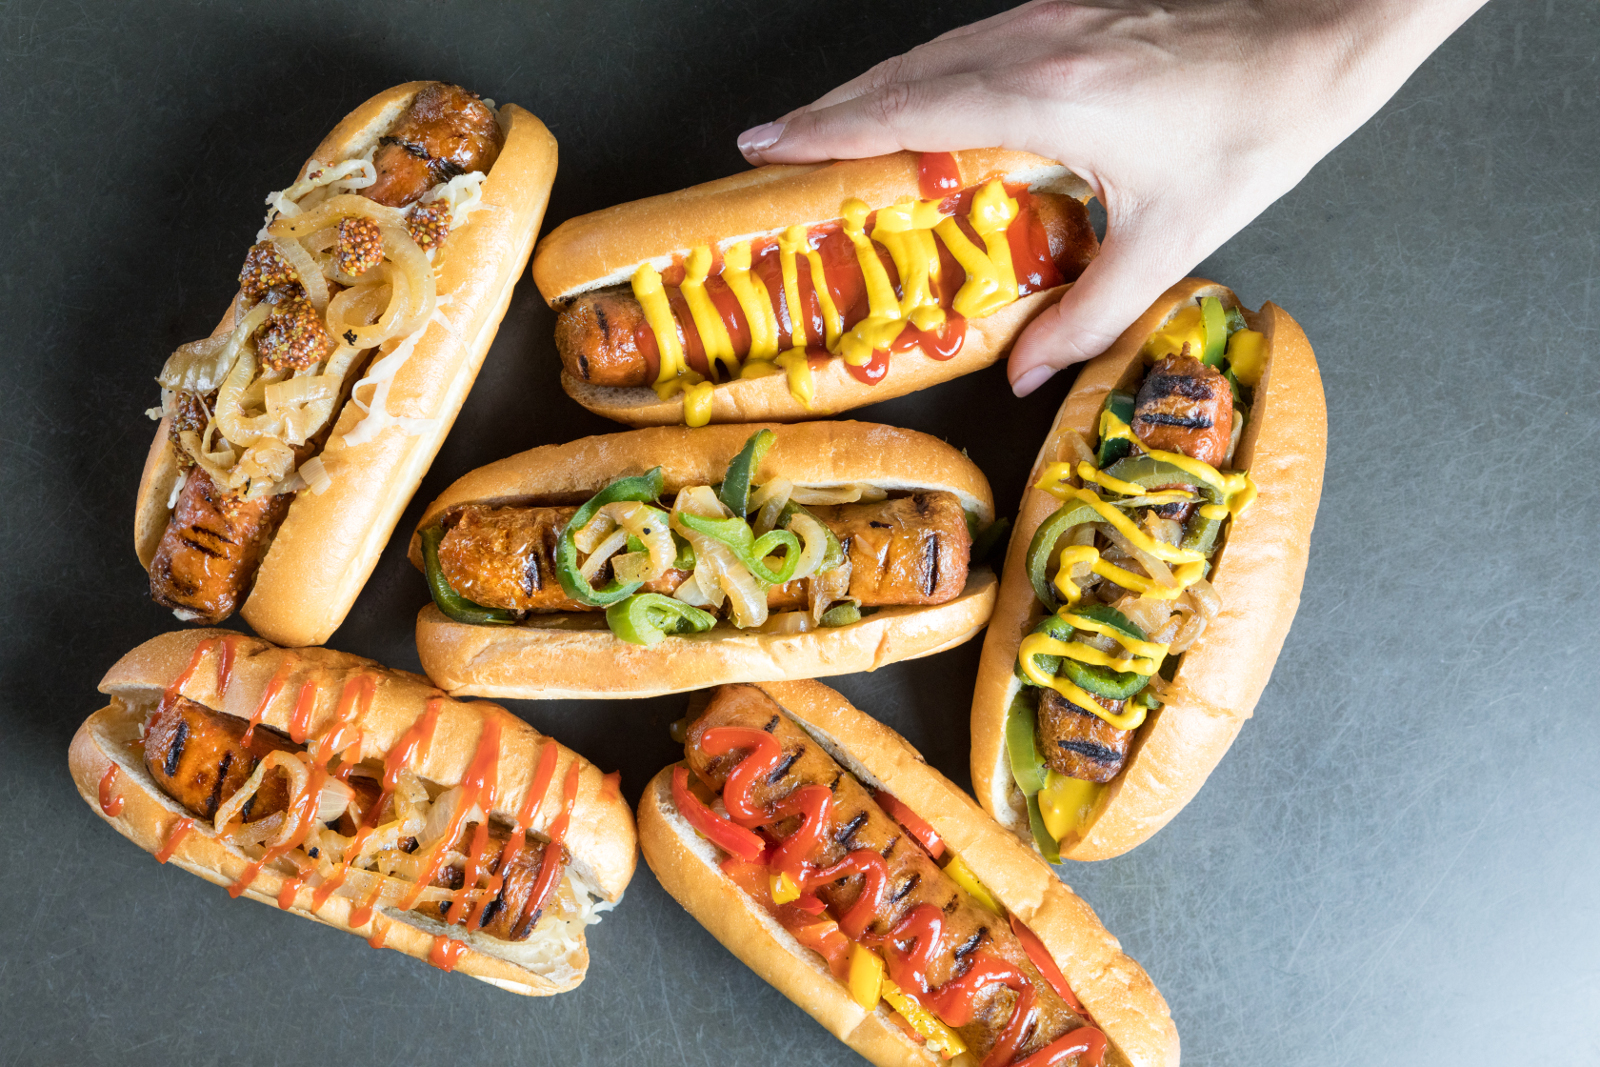 The Beyond Sausage Is Coming to Veggie Grill and Meat-Heavy Sausage Restaurant in LA!